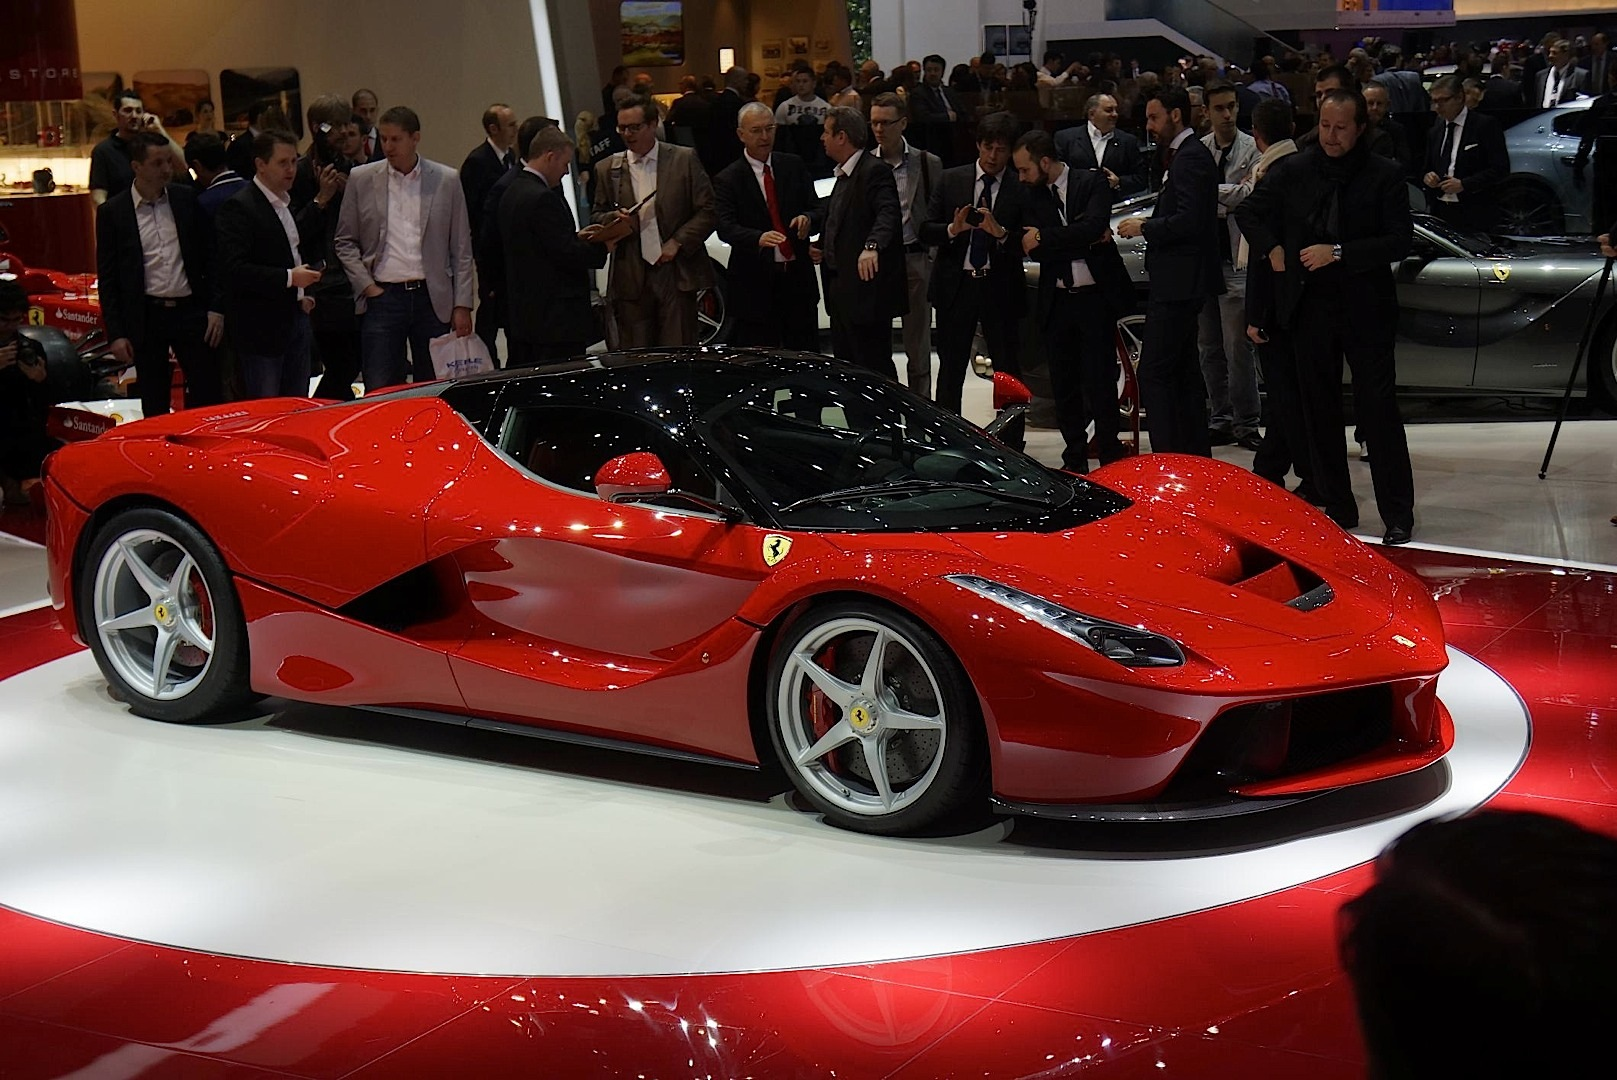 2013 Laferrari Ferrari Enzo Successor Revealed In Geneva